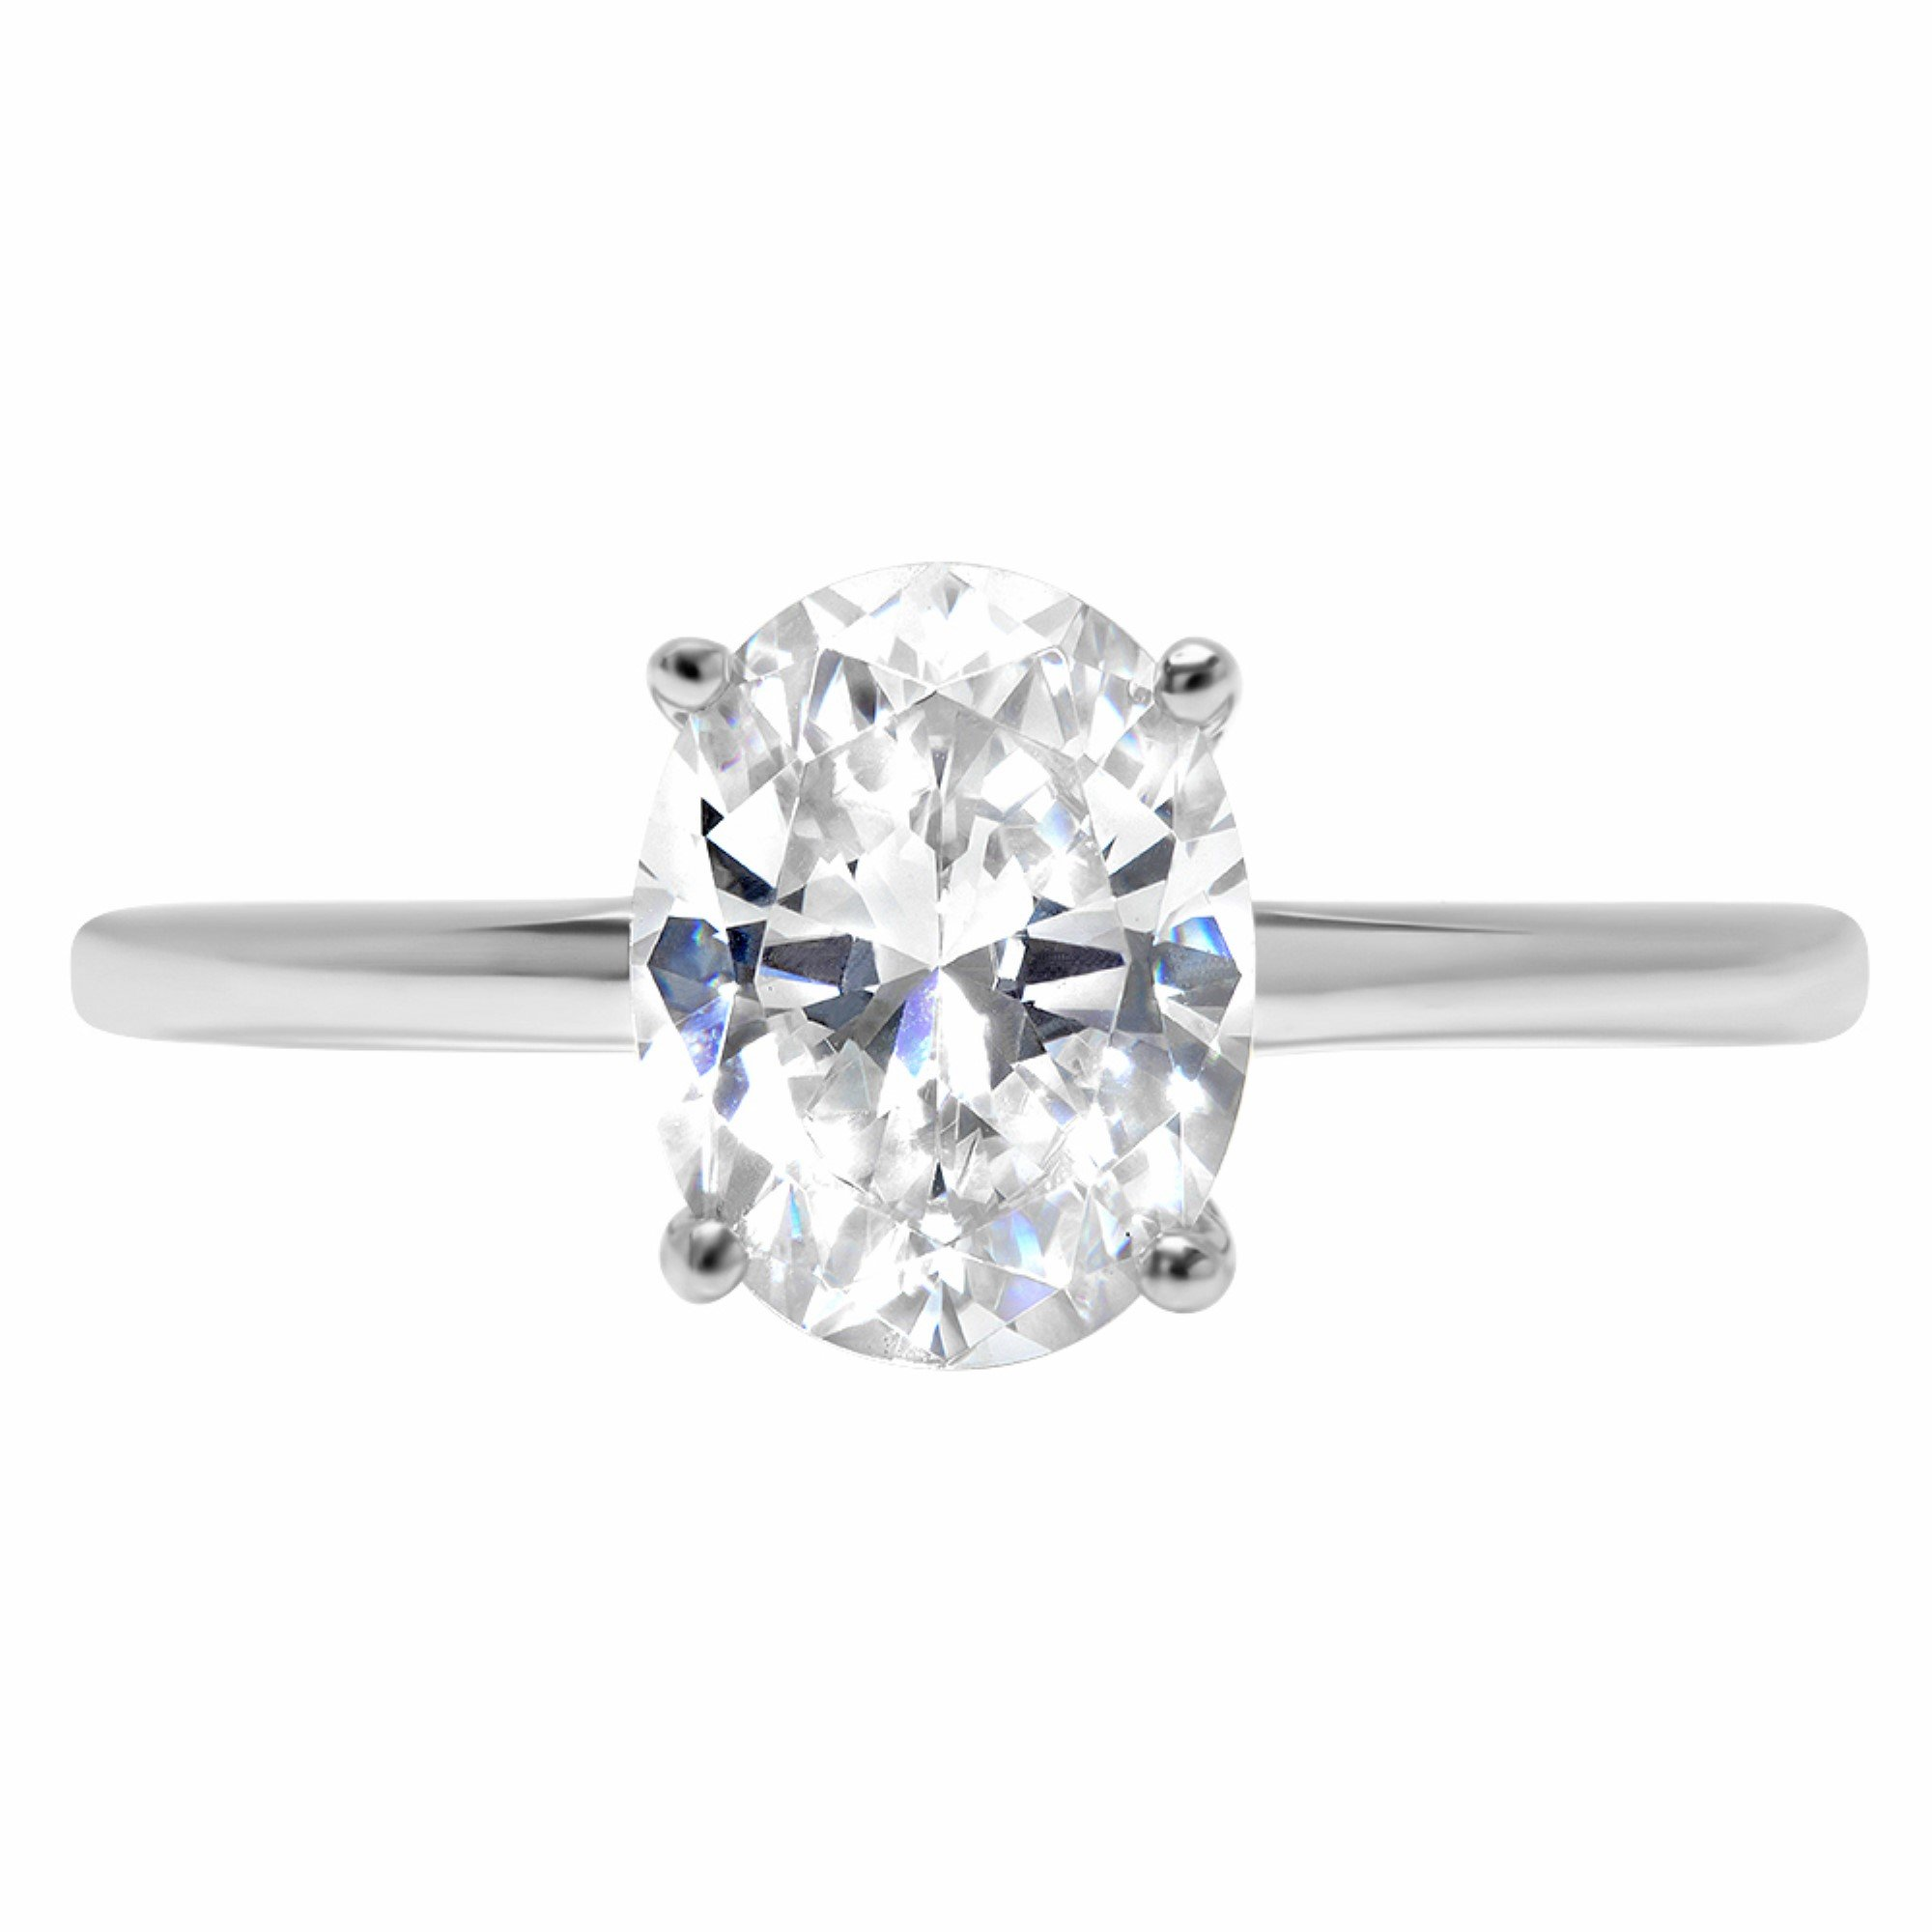 2.5ct Brilliant Oval Cut Solitaire Highest Quality Moissanite Ideal VVS1 D 4-Prong Engagement Wedding Bridal Promise Anniversary Ring in Solid Real 14k White Gold for Women